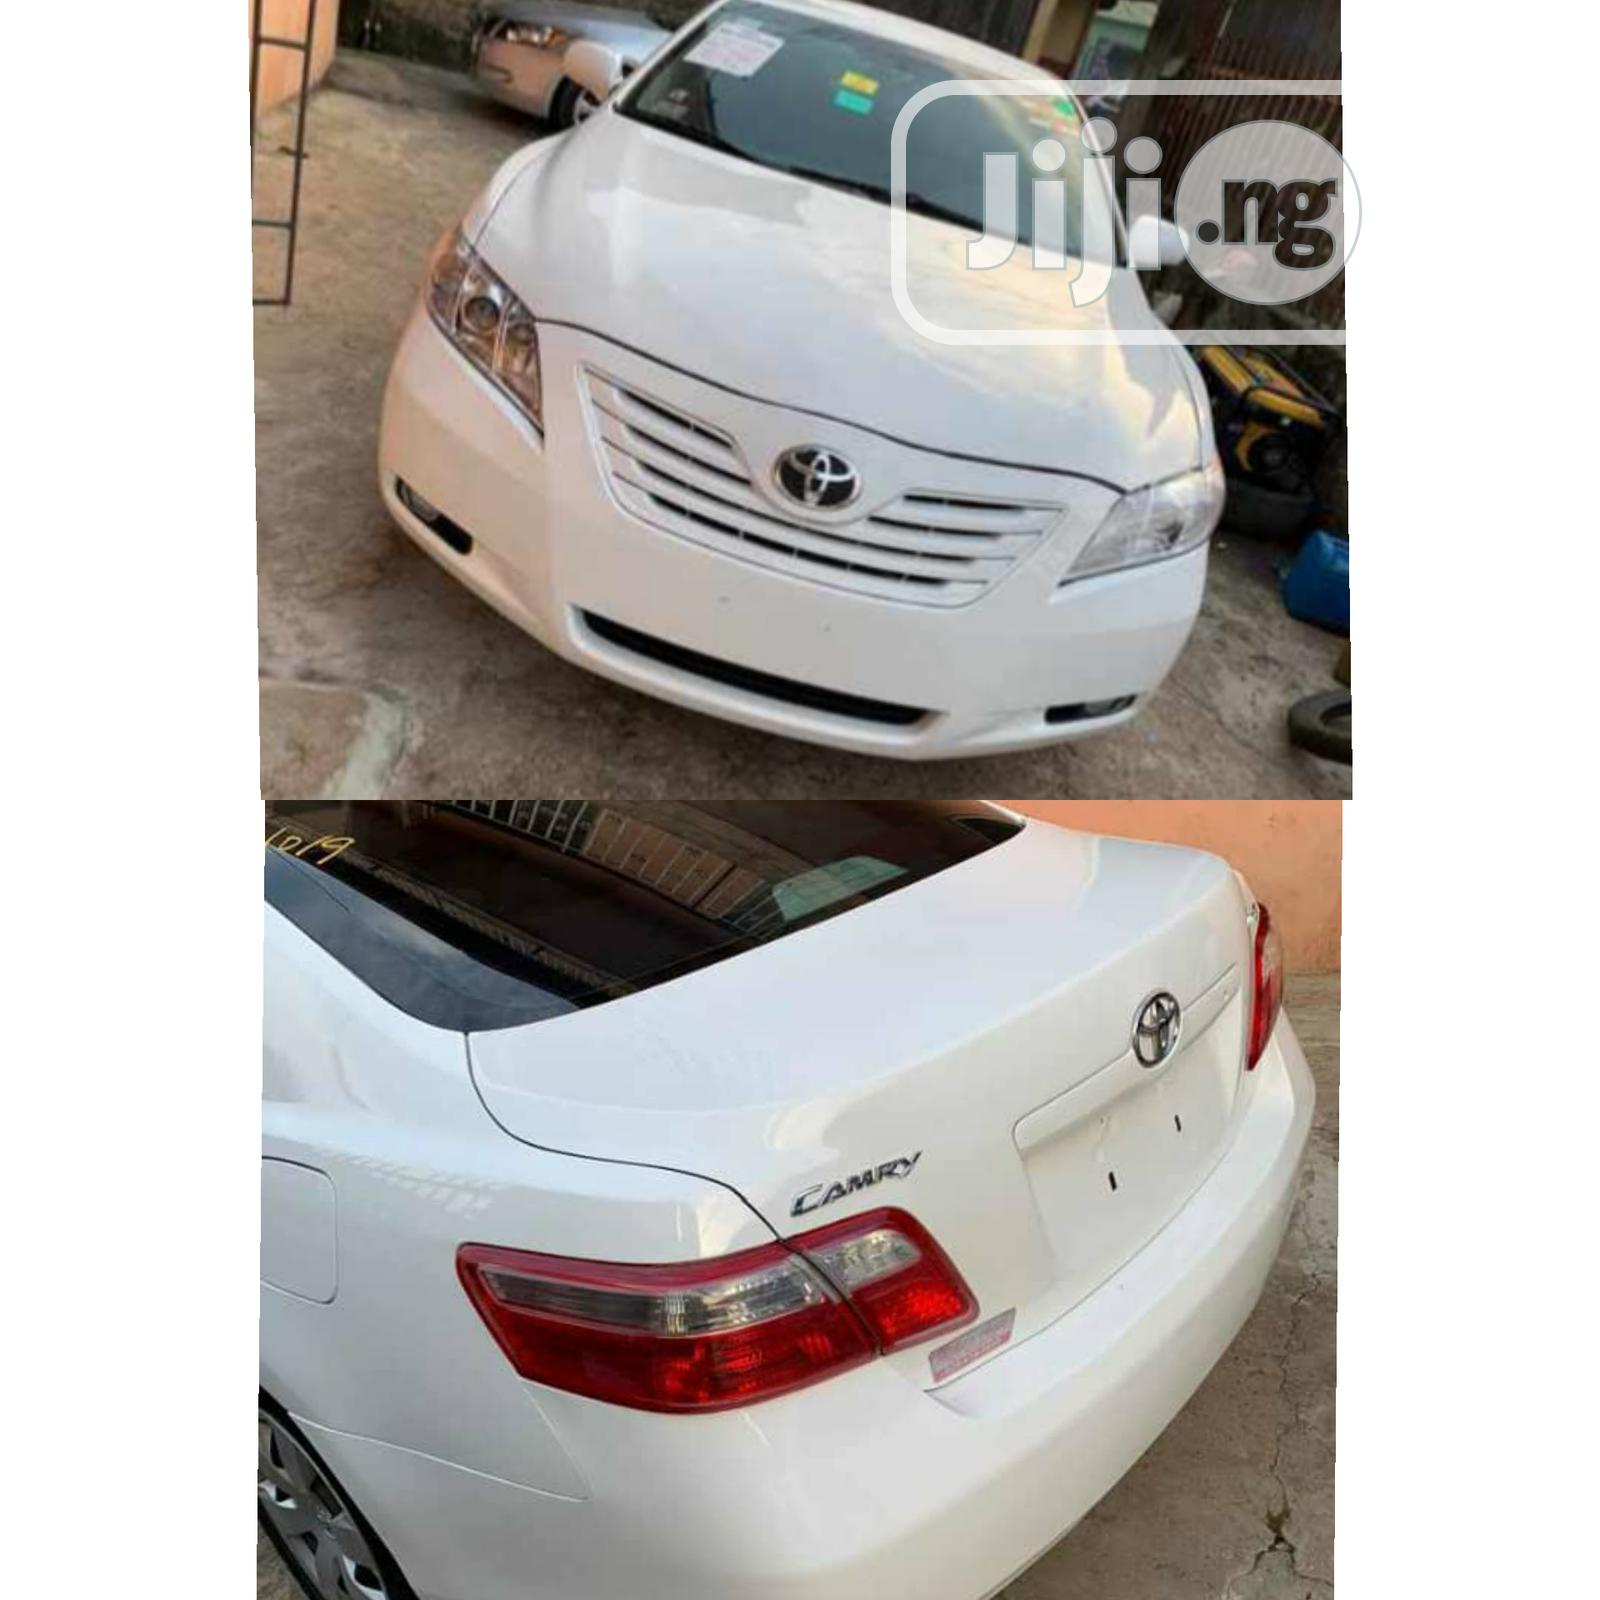 Archive Toyota Camry 2009 White In Lagos State Cars Victor Chidi Jiji Ng For Sale In Lagos Buy Cars From Victor Chidi On Jiji Ng